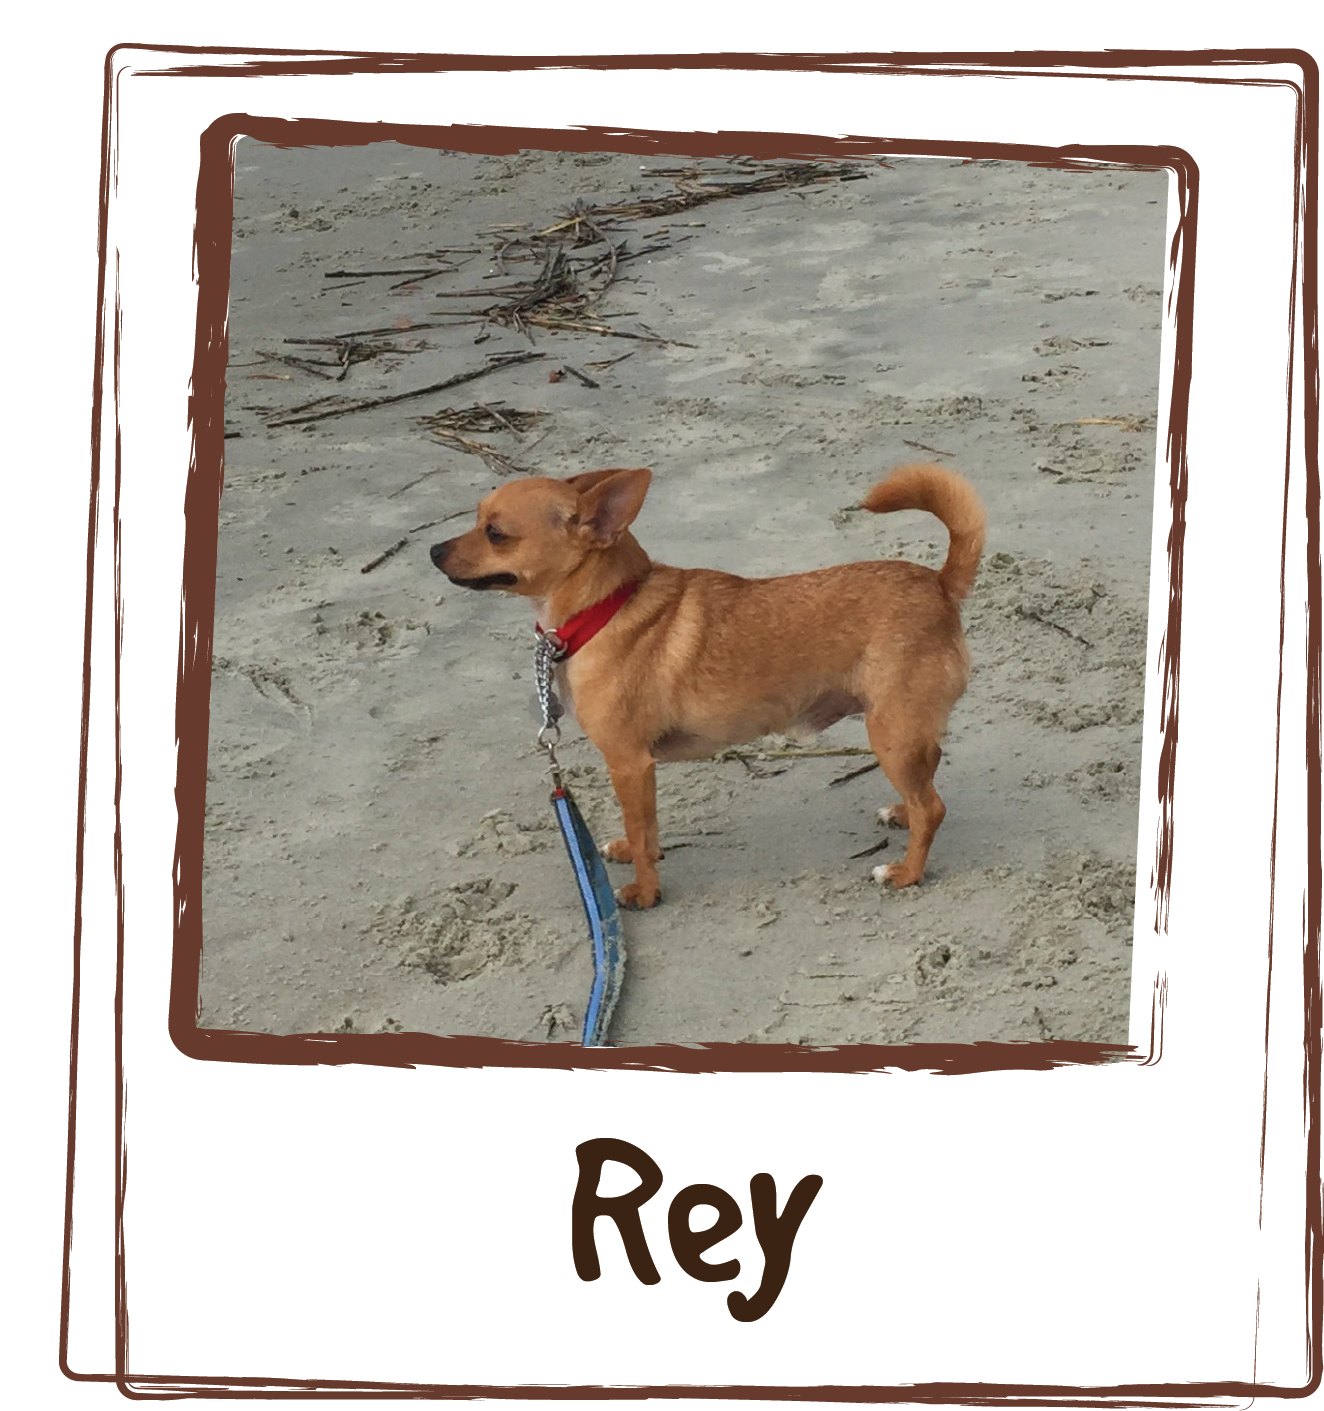 """""""Our little guy Rey, was really suffering with skin allergies and itching during the hot and humid summers here in South Carolina. We tried everything from over-the-counter allergy medication to prescription formulas. Nothing helped! Rey would chew and scratch, and pull out patches of fur. Then, while shopping at a local pet store I discovered Licks Dog Skin and Allergy + Shiny Coat and decided to give it a try. First, Rey loved the flavor and it made a nice supplement on his food. Then, the itching subsided and his coat filled in more beautiful than before! He is a happy boy now, and loves his Licks!! Thank you for making such a healthy solution for a frustrating problem!!"""""""